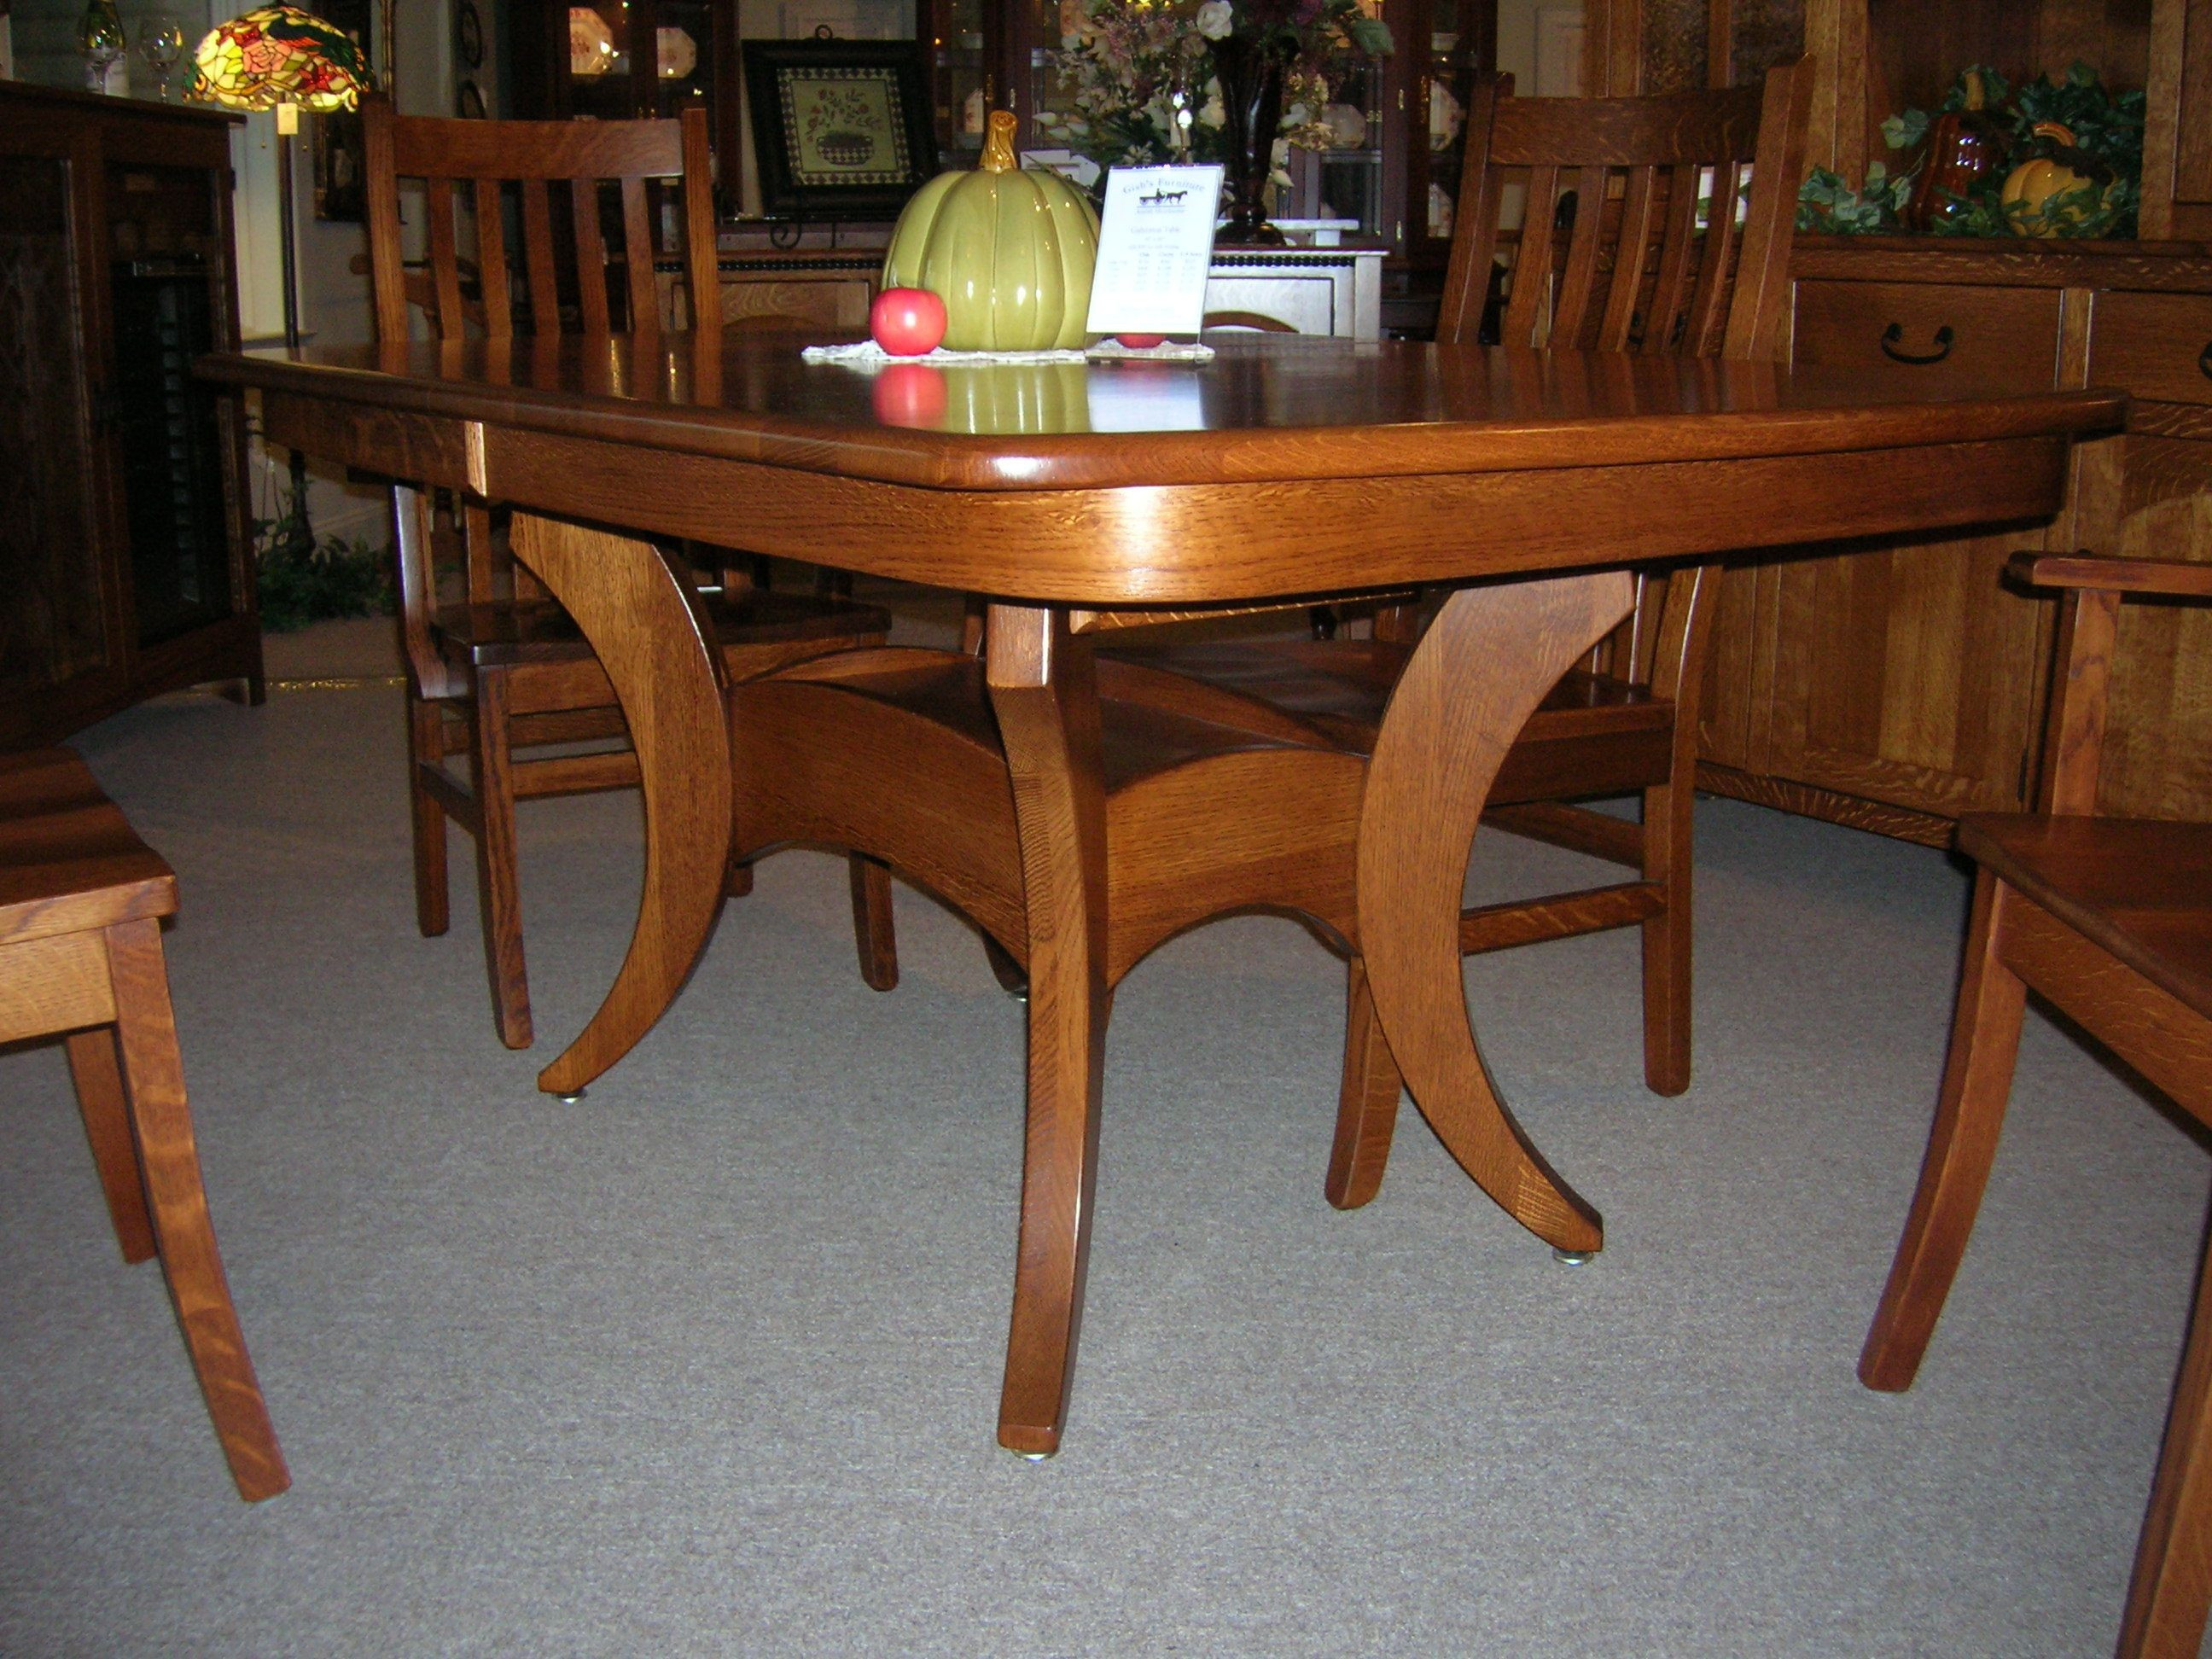 quarter sawn white oak hardwood flooring of the 20 unique galveston dining table welovedandelion com pertaining to galveston dining table elegant the galveston dining collection shown in quarter sawn white oak of galveston